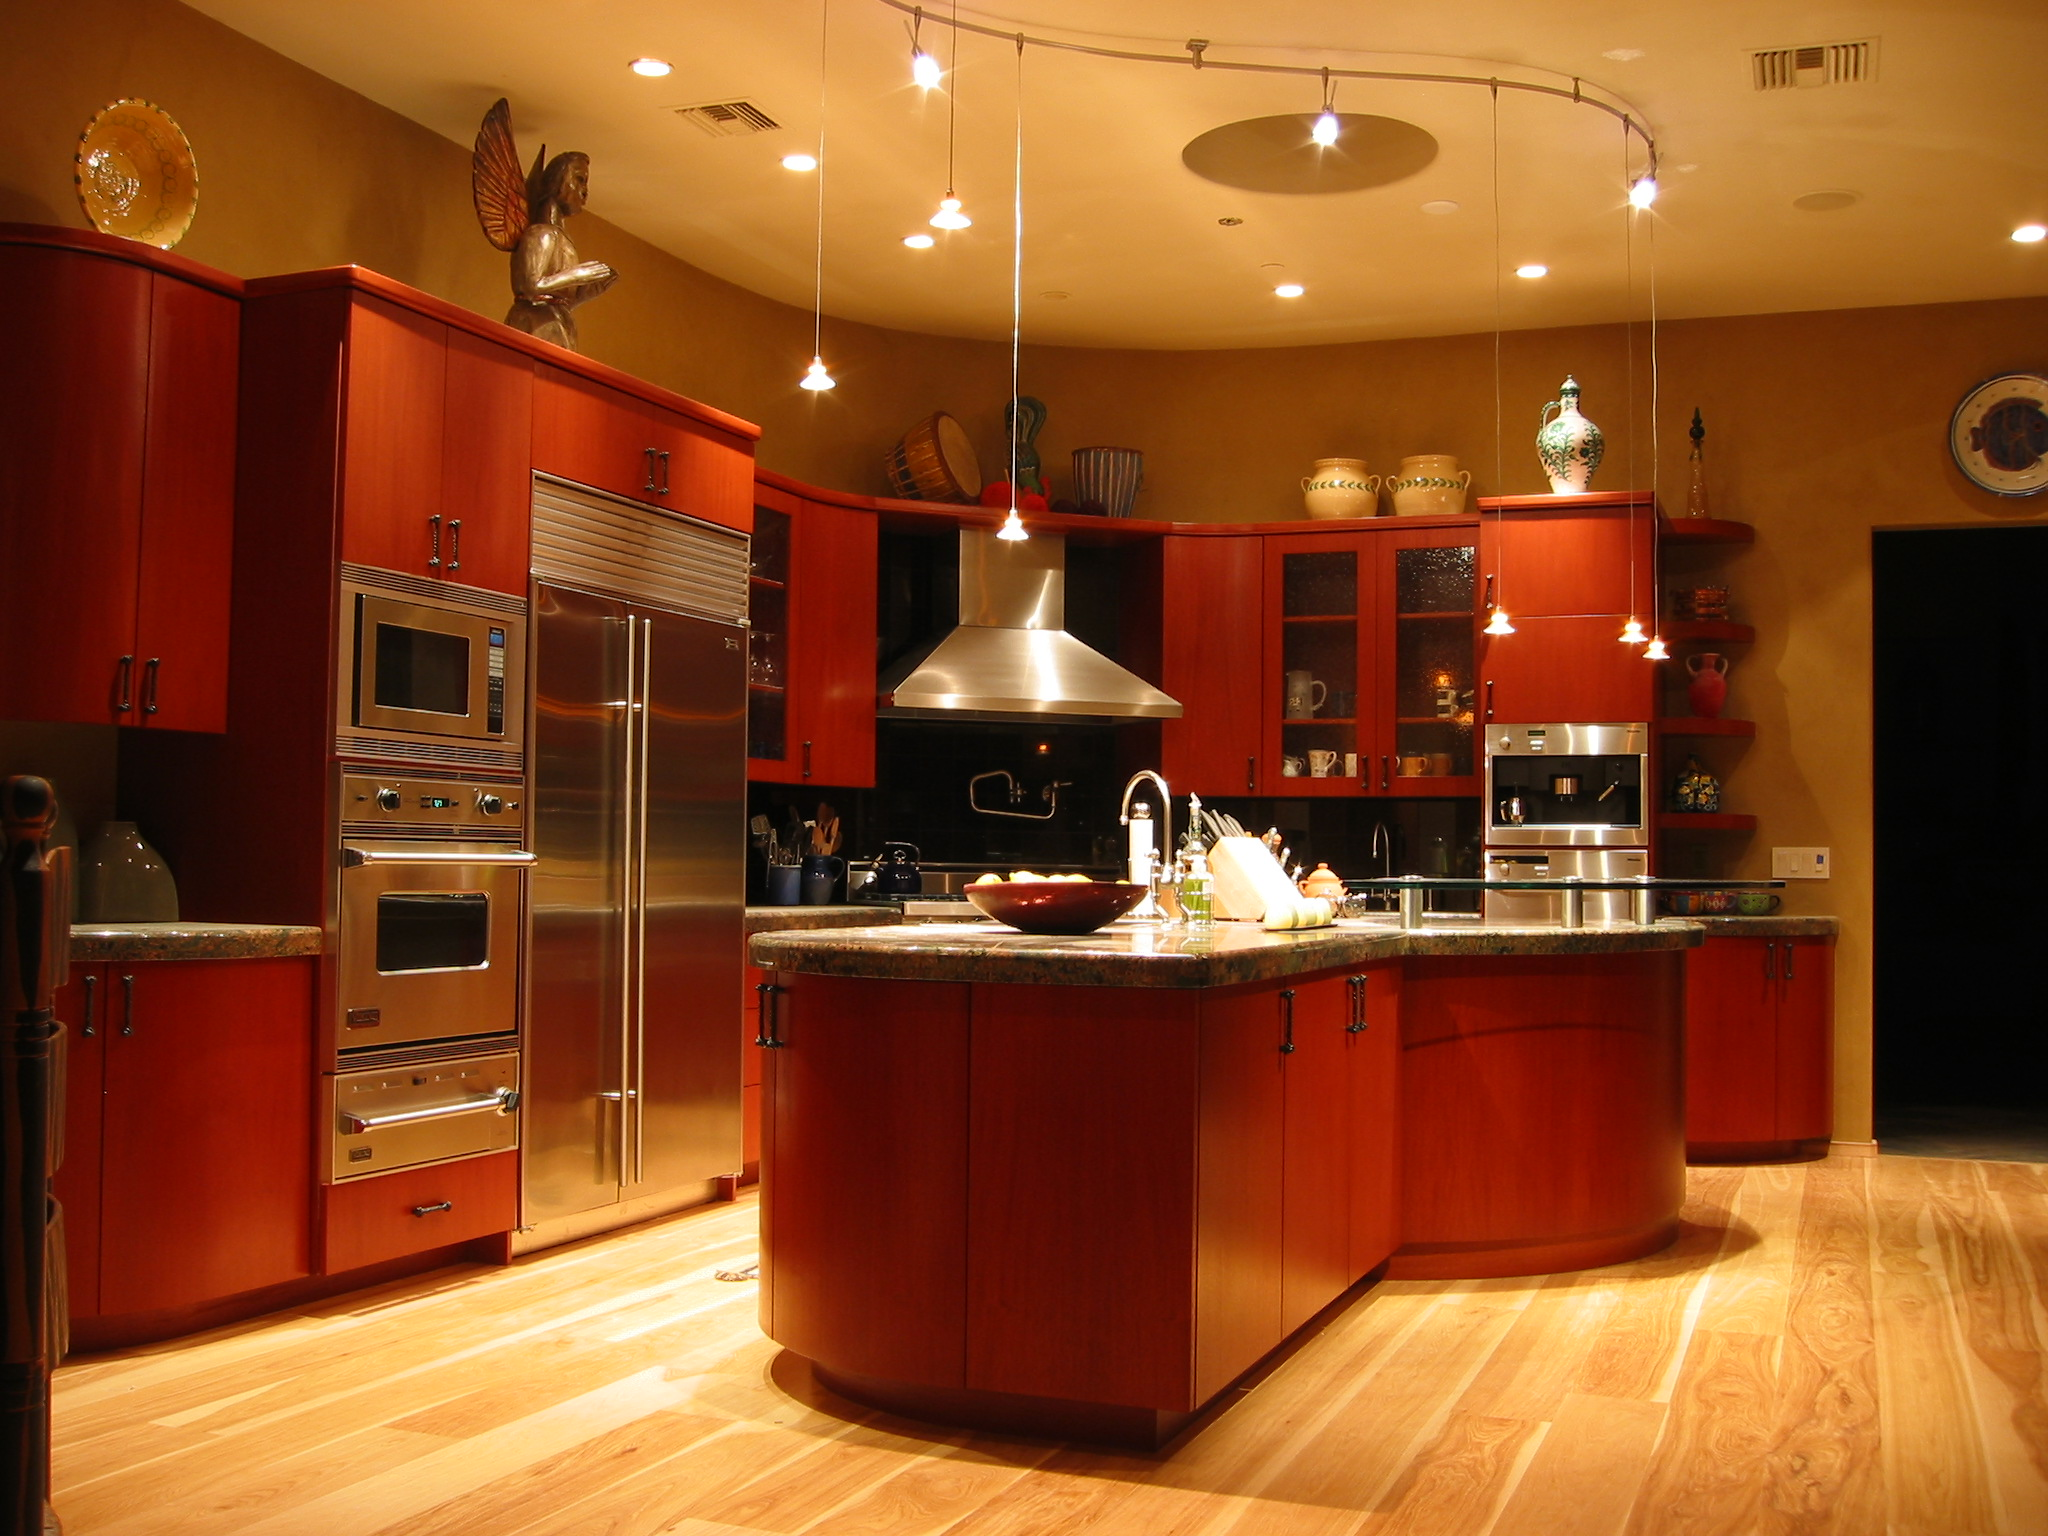 Illuminated custom kitchen lighting